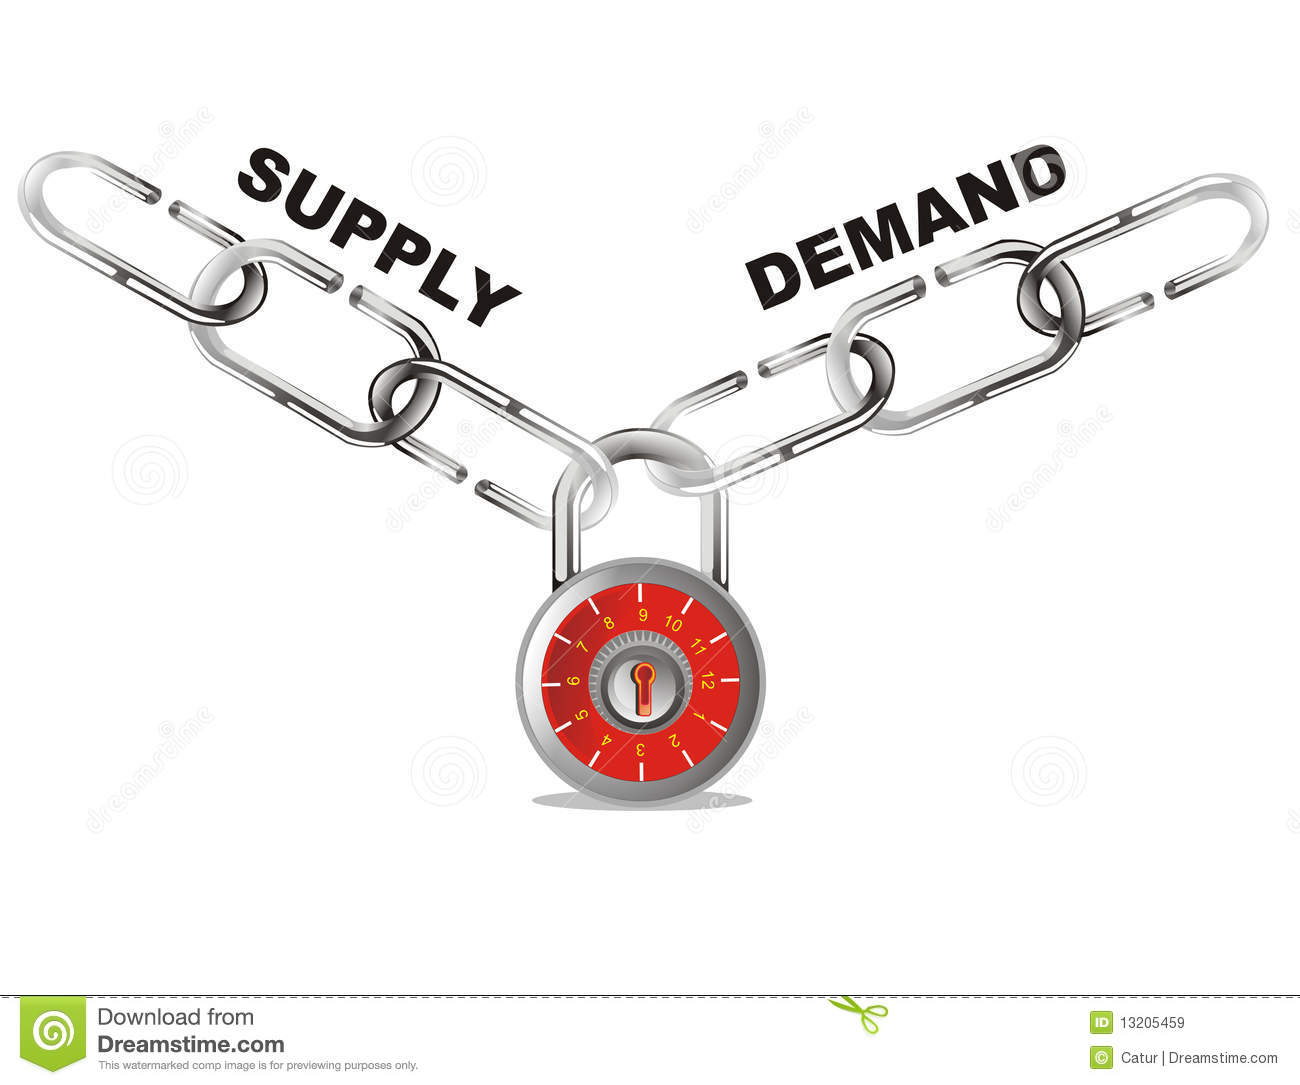 Supply And Demand Connect Chain Stock Vector